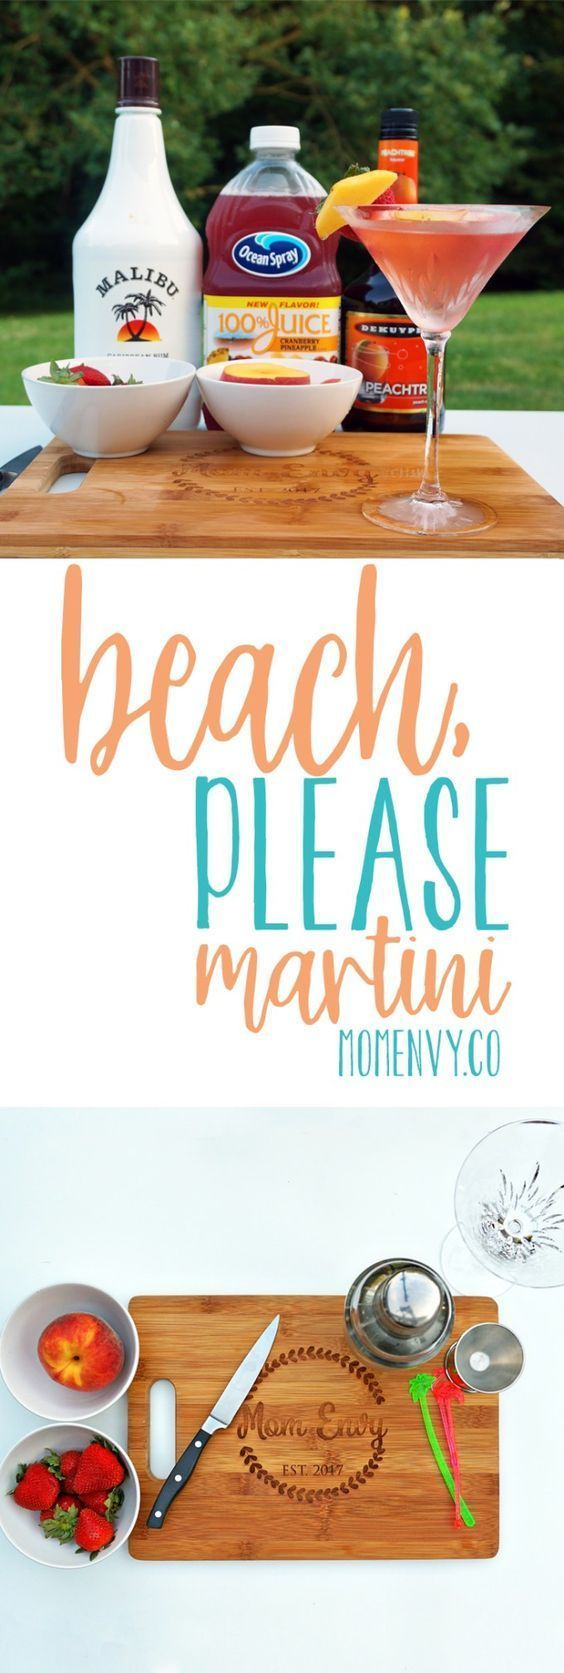 Beach, Please Martini from Mom Envy. Try this super easy cocktail recipe perfect for summer. Summer cocktail. Easy cocktail. Simple cocktail. Fruity cocktail. Fruity Martini. Summer martini. Easy Martini. Summer drink. Easy drink. Malibu Rum. Peach Schnapps. #summercocktails